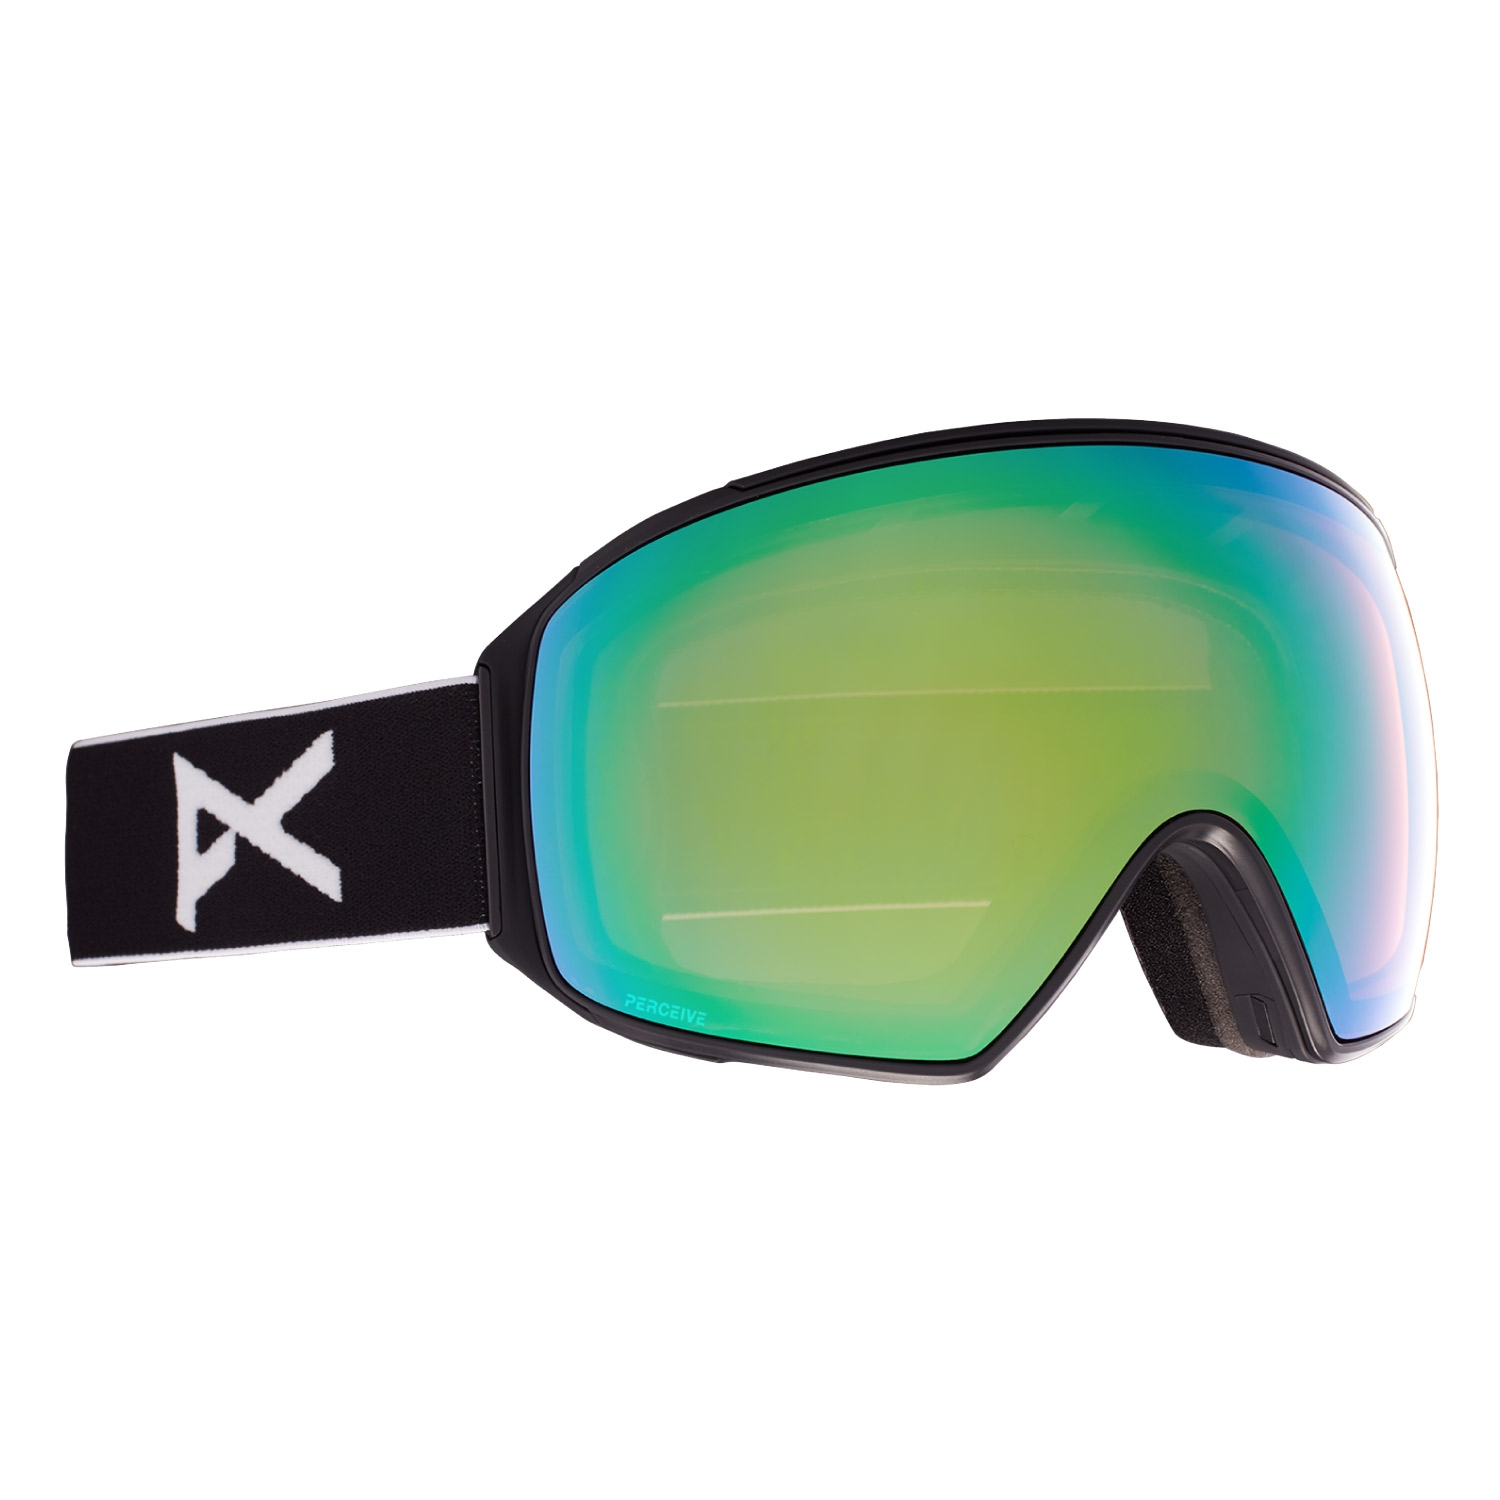 Anon M4 Goggles Toric Black/Perceive Variable Green Lens 2021